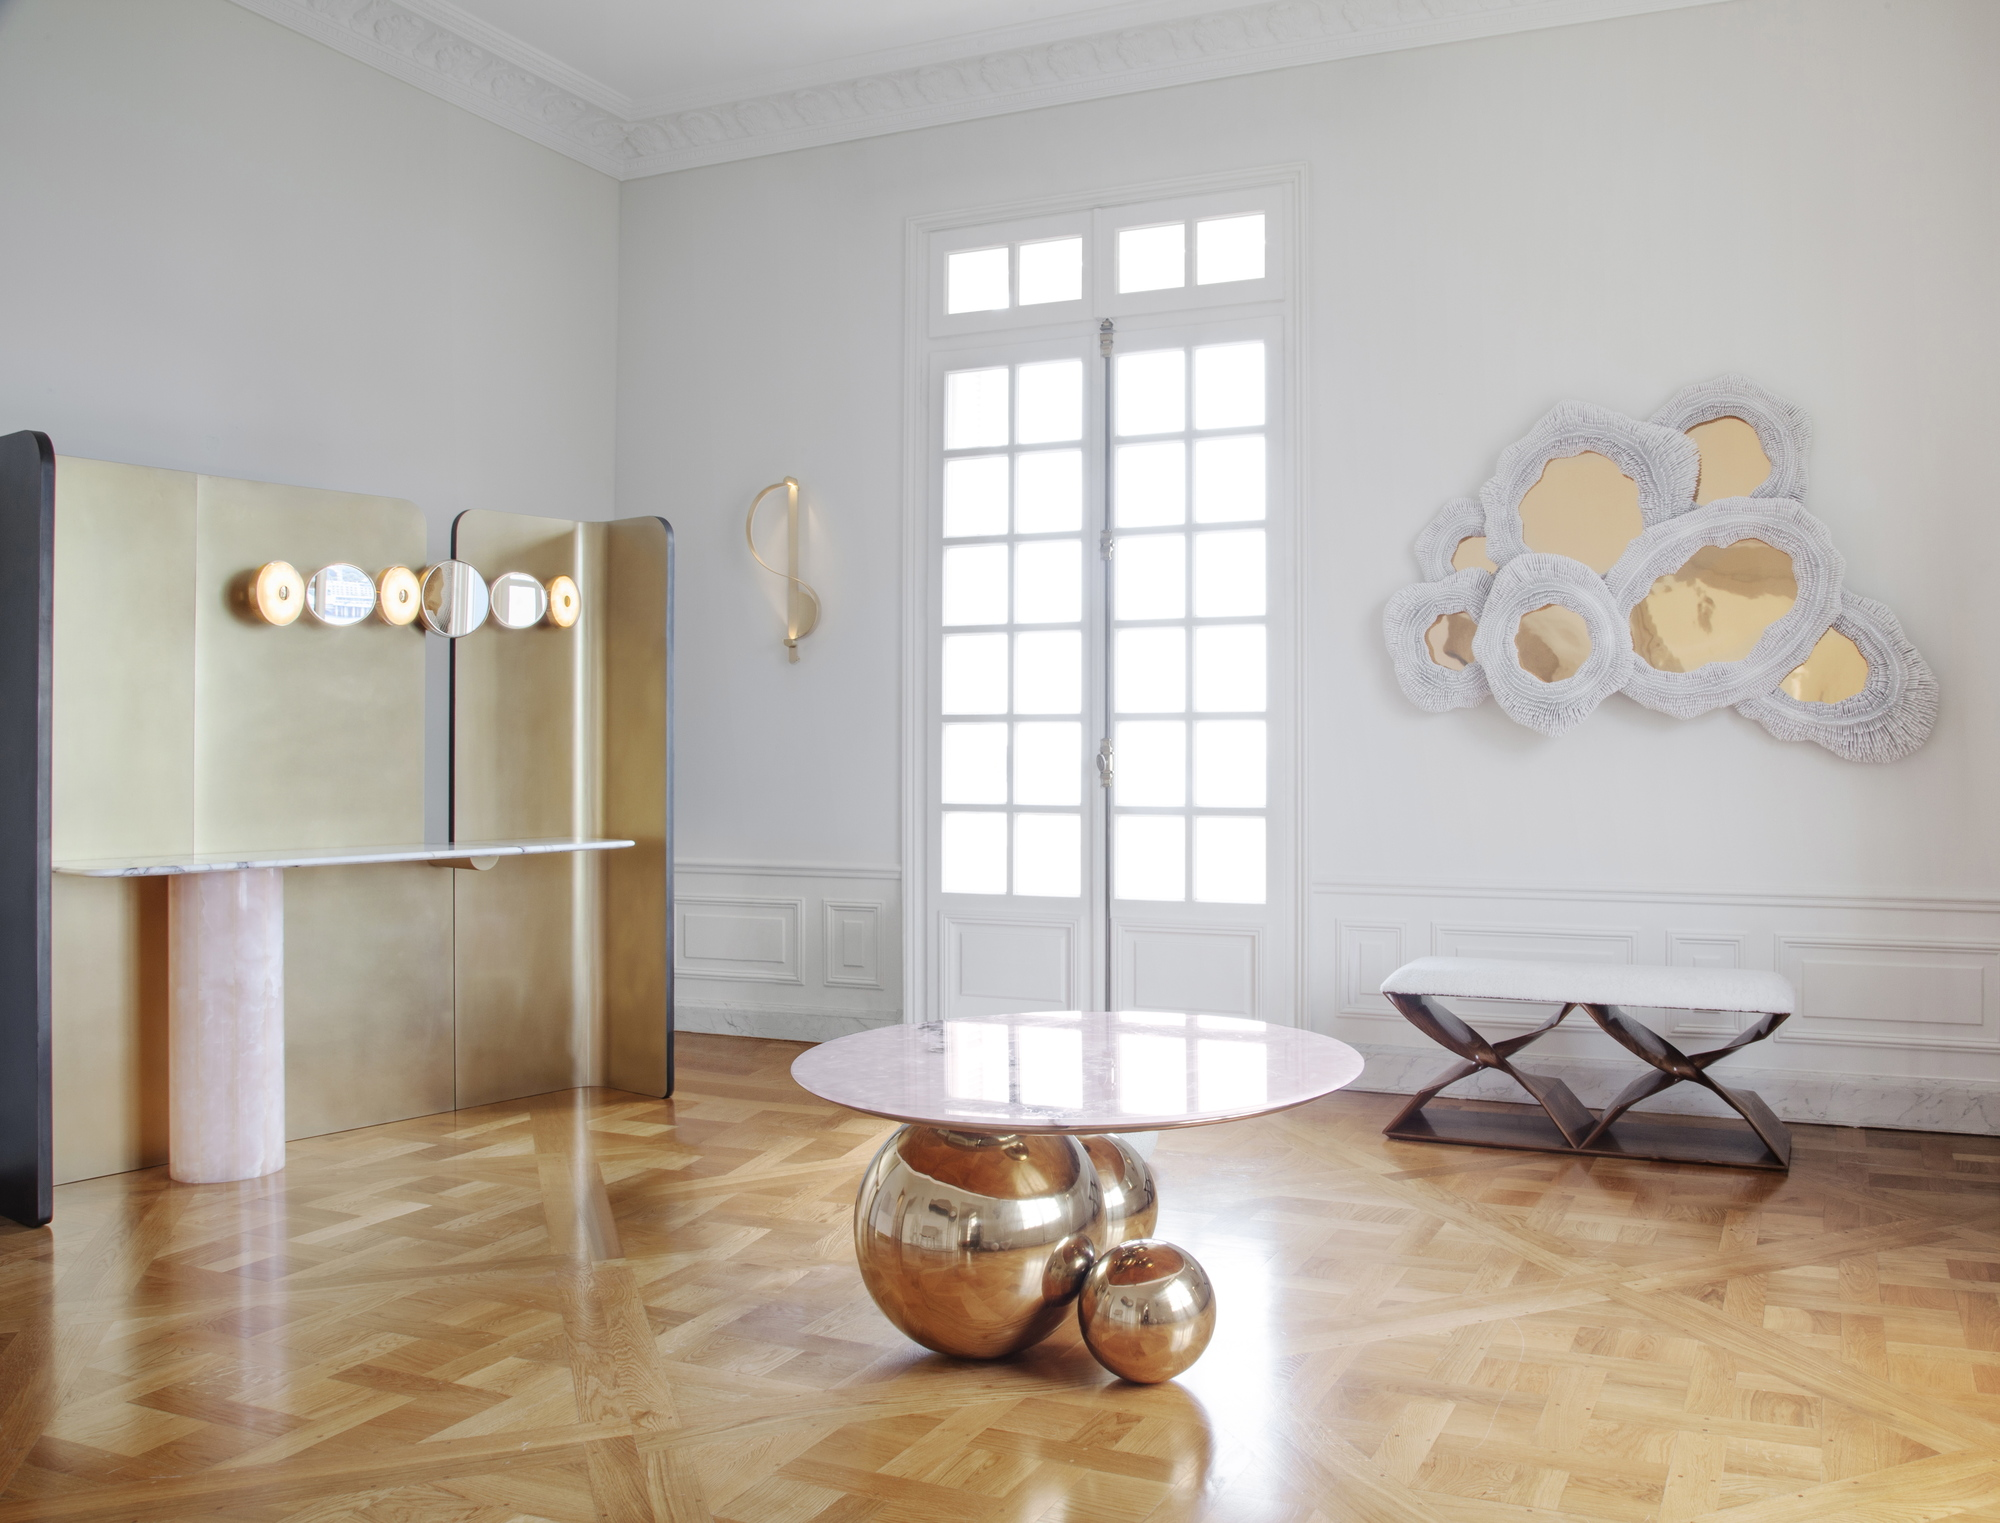 Be Inspired By The Wonders Of These Contemporary Art Galleries art galleries Be Inspired By The Wonders Of These Contemporary Art Galleries Galerie BSL